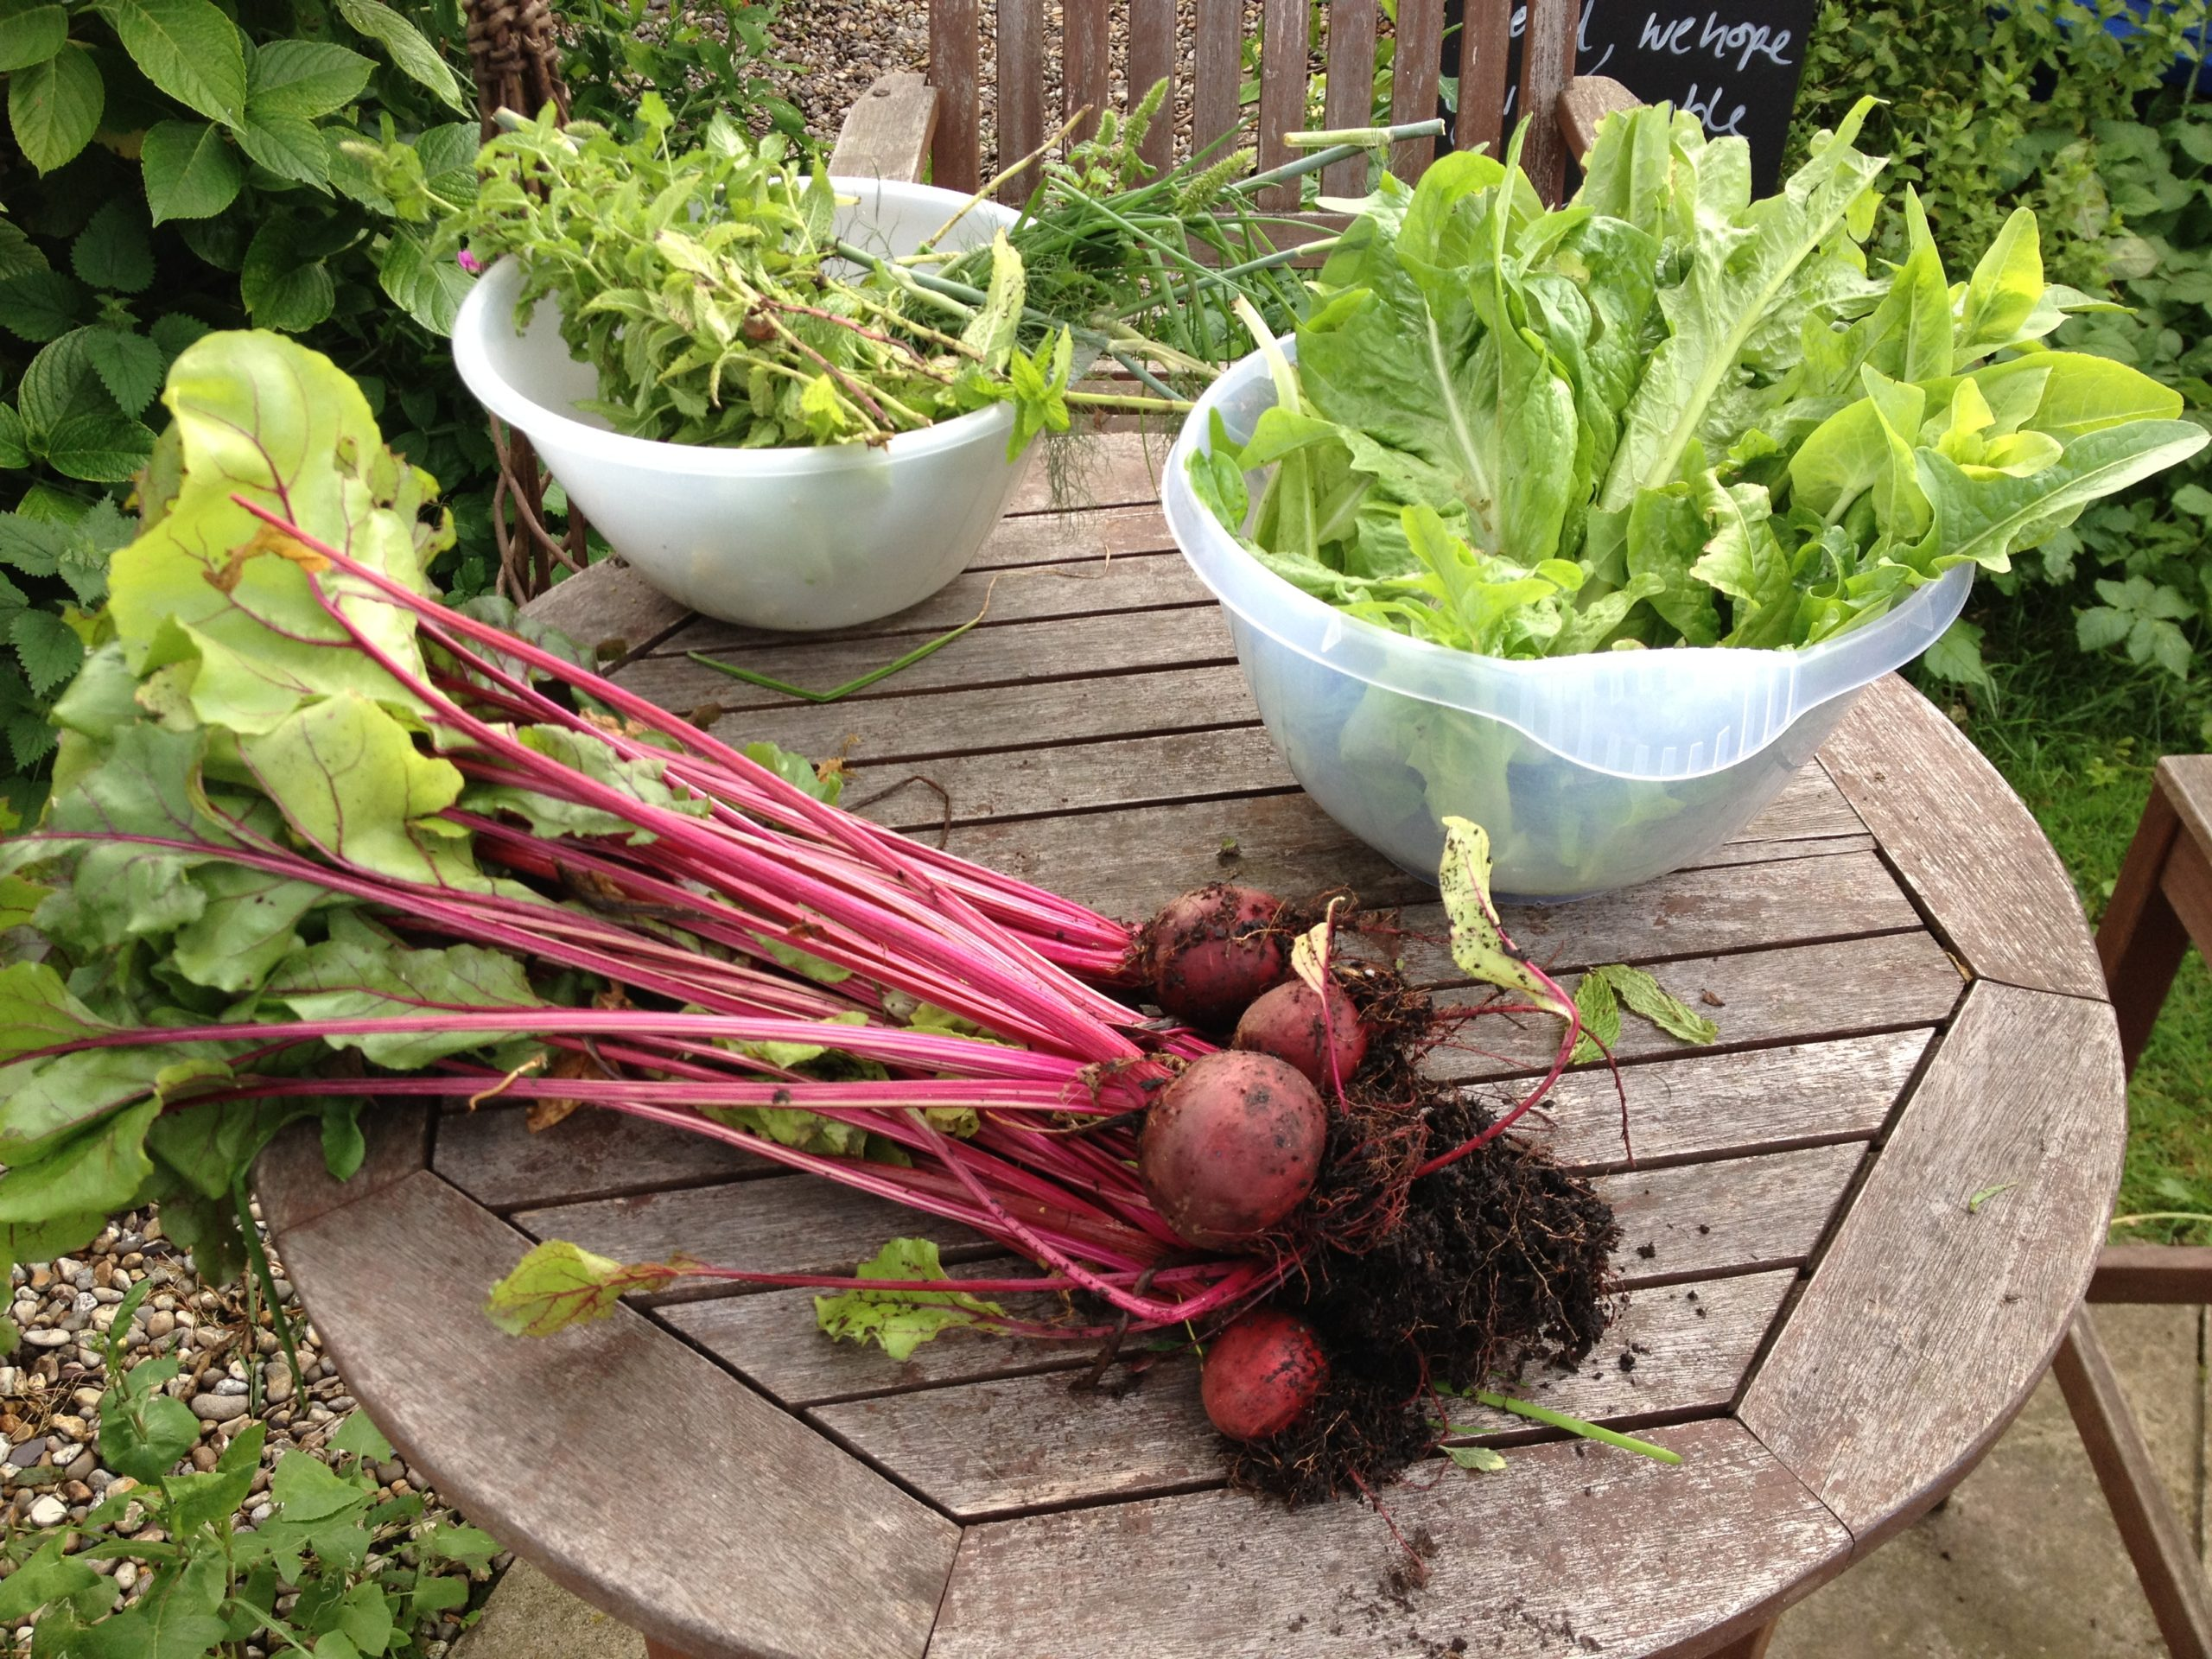 Beetroot grown in the garden at Ann's Pantry